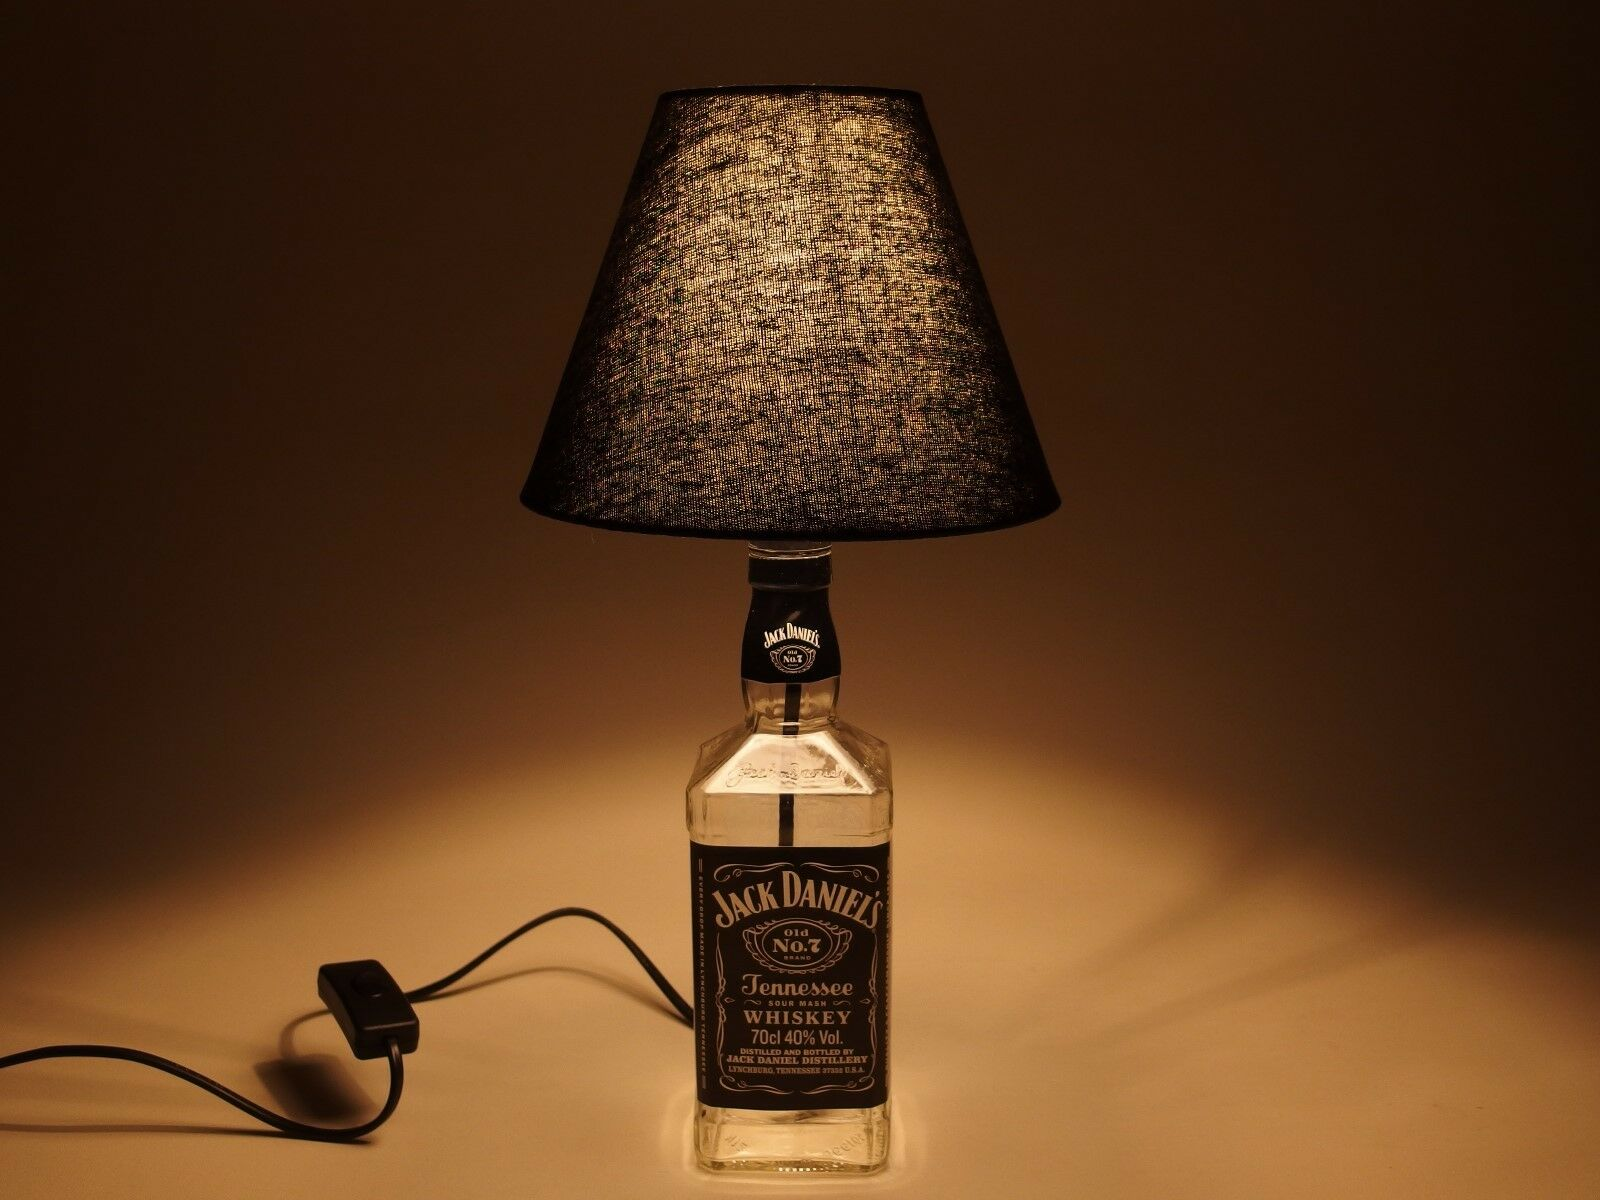 jack daniels flaschen lampe tischlampe led 220v mit schalter s2k 0 7l eur 39 99 picclick de. Black Bedroom Furniture Sets. Home Design Ideas